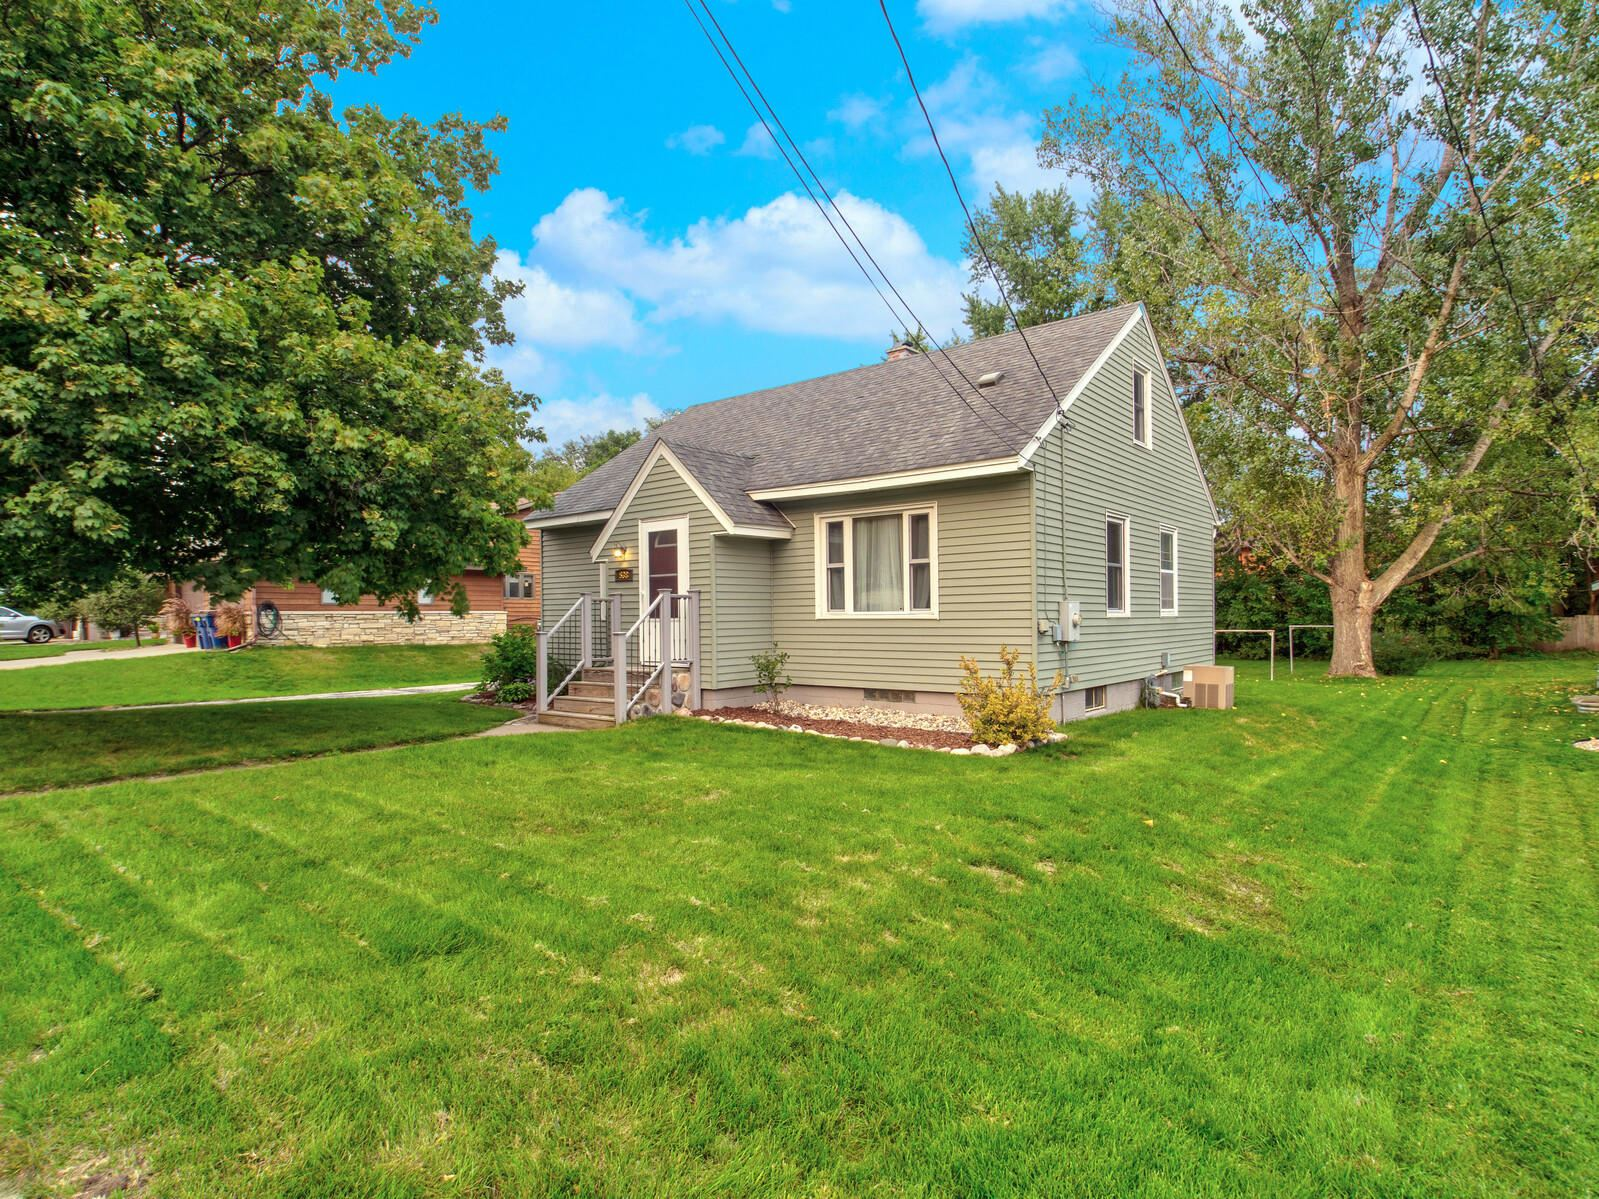 538 6th Ave N, Onalaska, WI 54650 - MLS#: 1710631